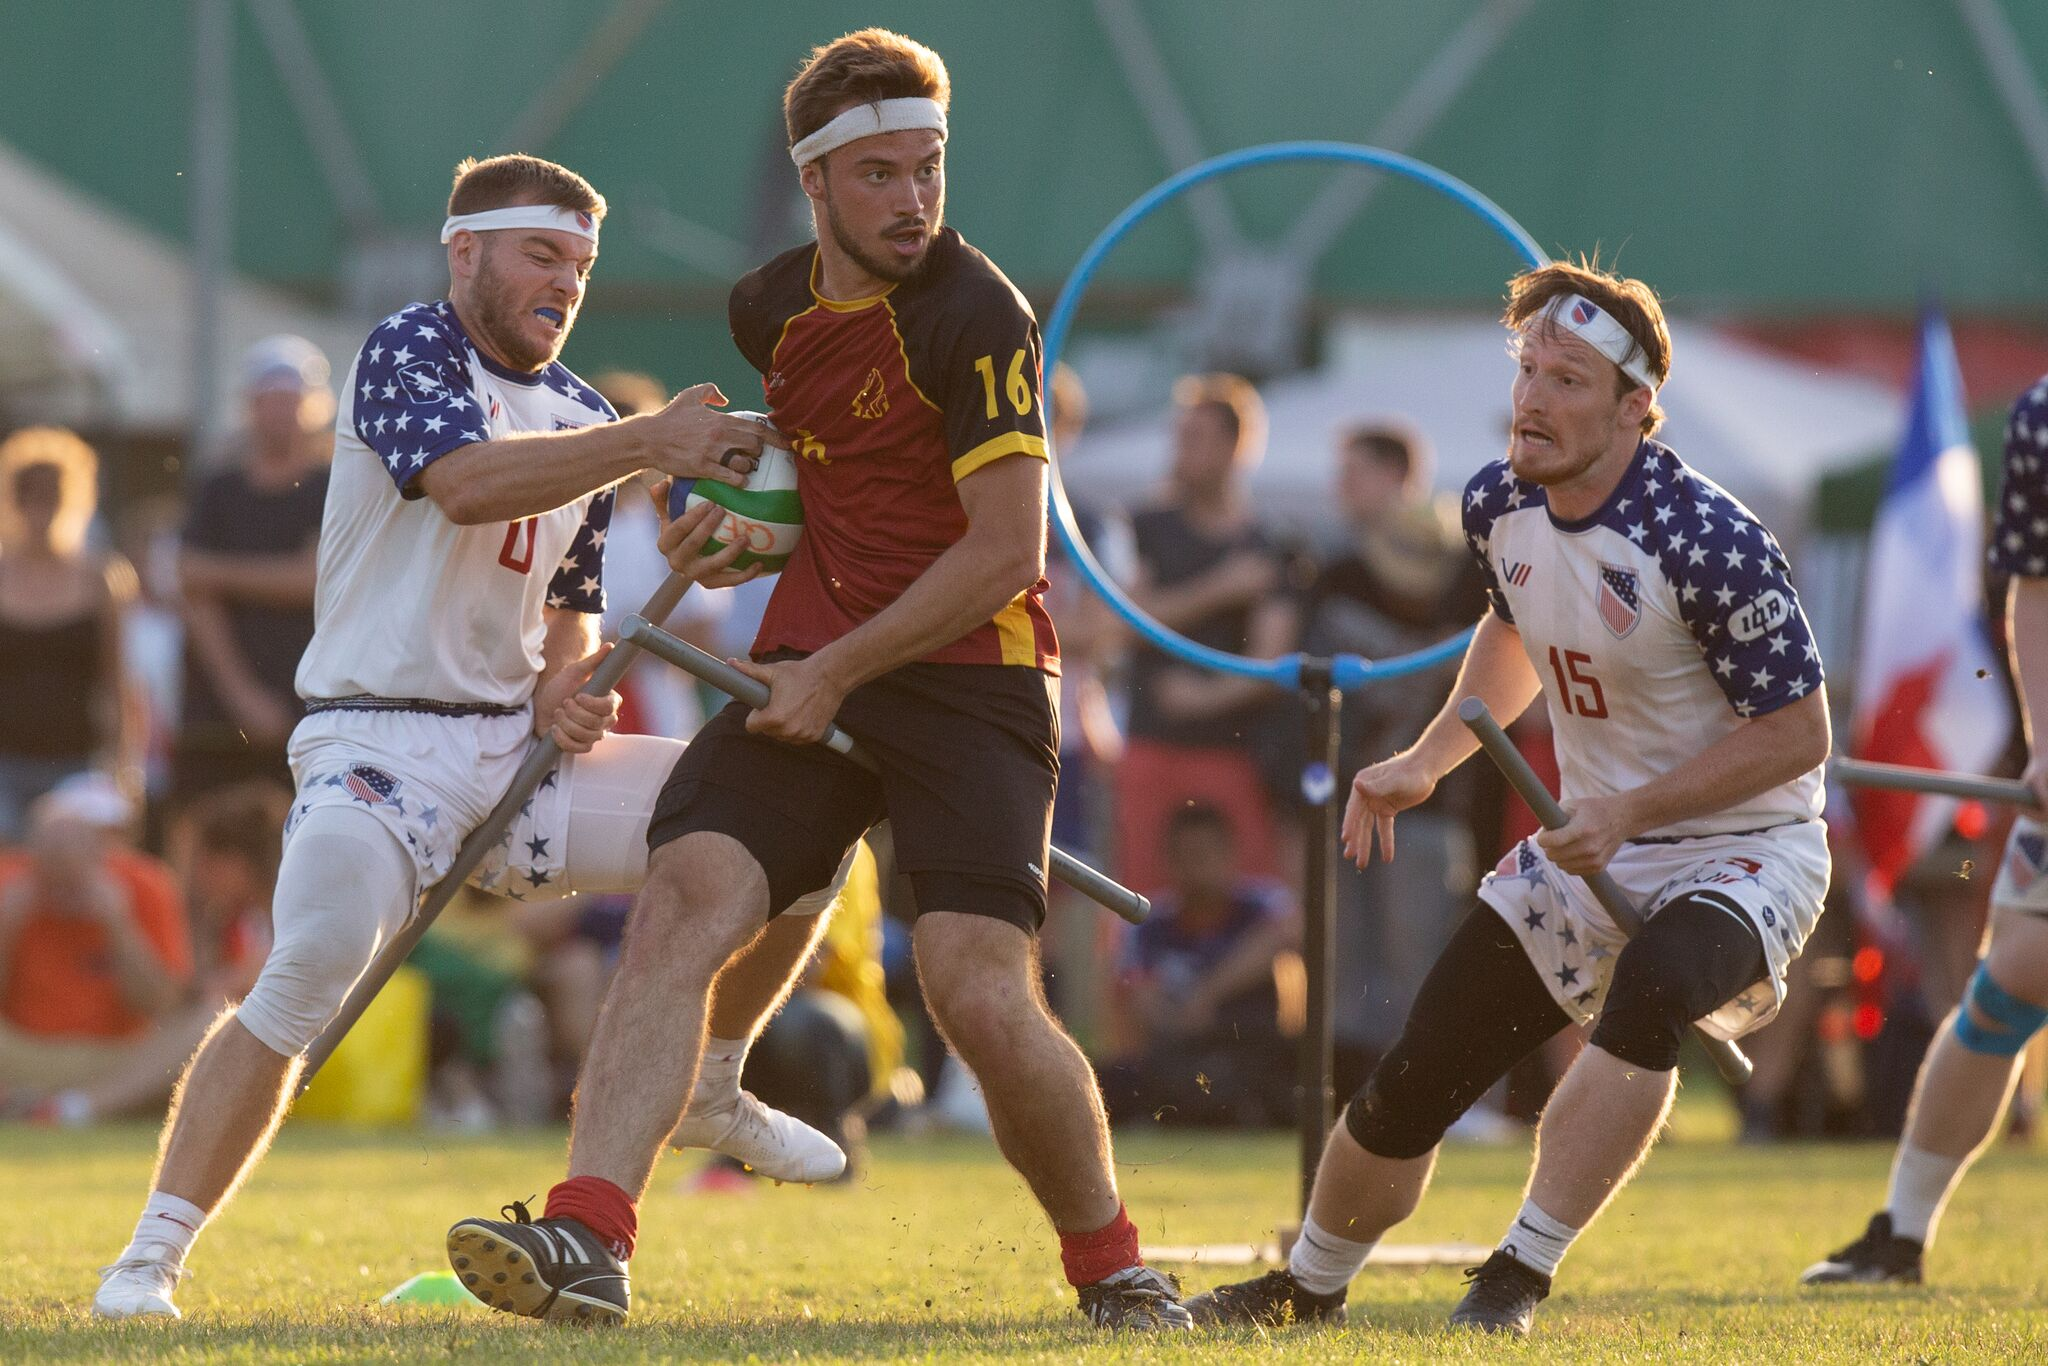 Chaser Andrew Axtell attempts to strip away the Quaffle from Belgium with Luke Langlinais on his right, during USA vs. Belgium